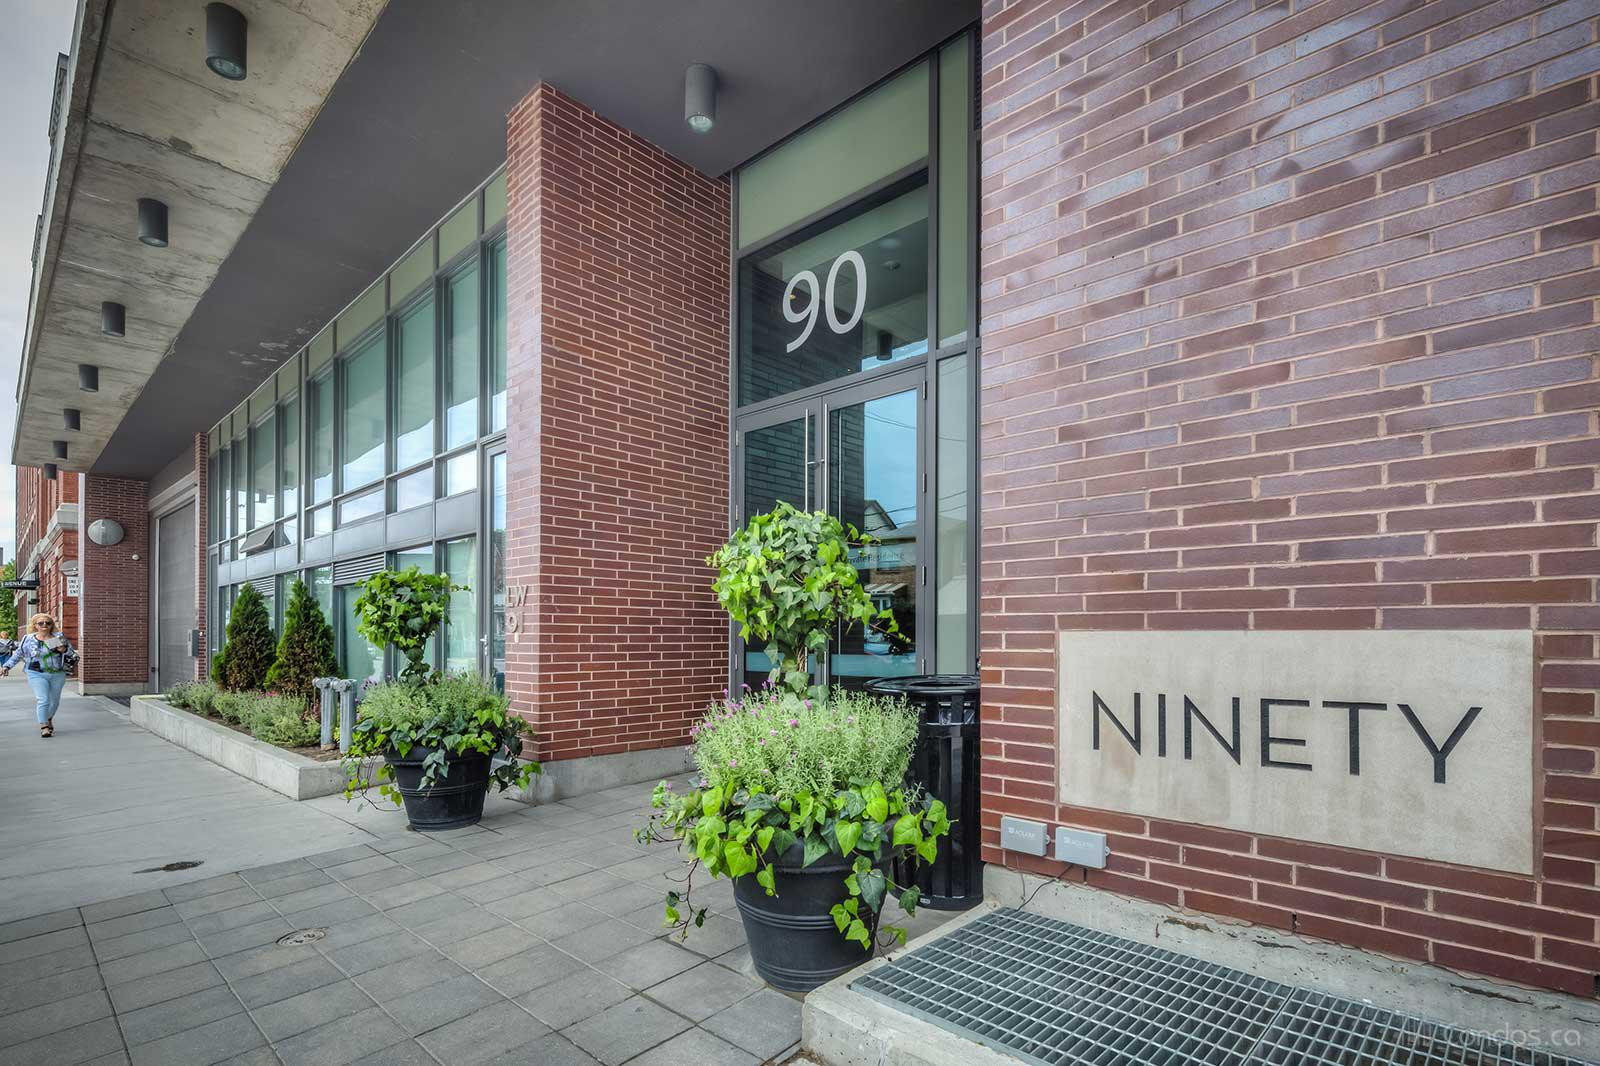 The Ninety at 90 Broadview Ave, Toronto 1